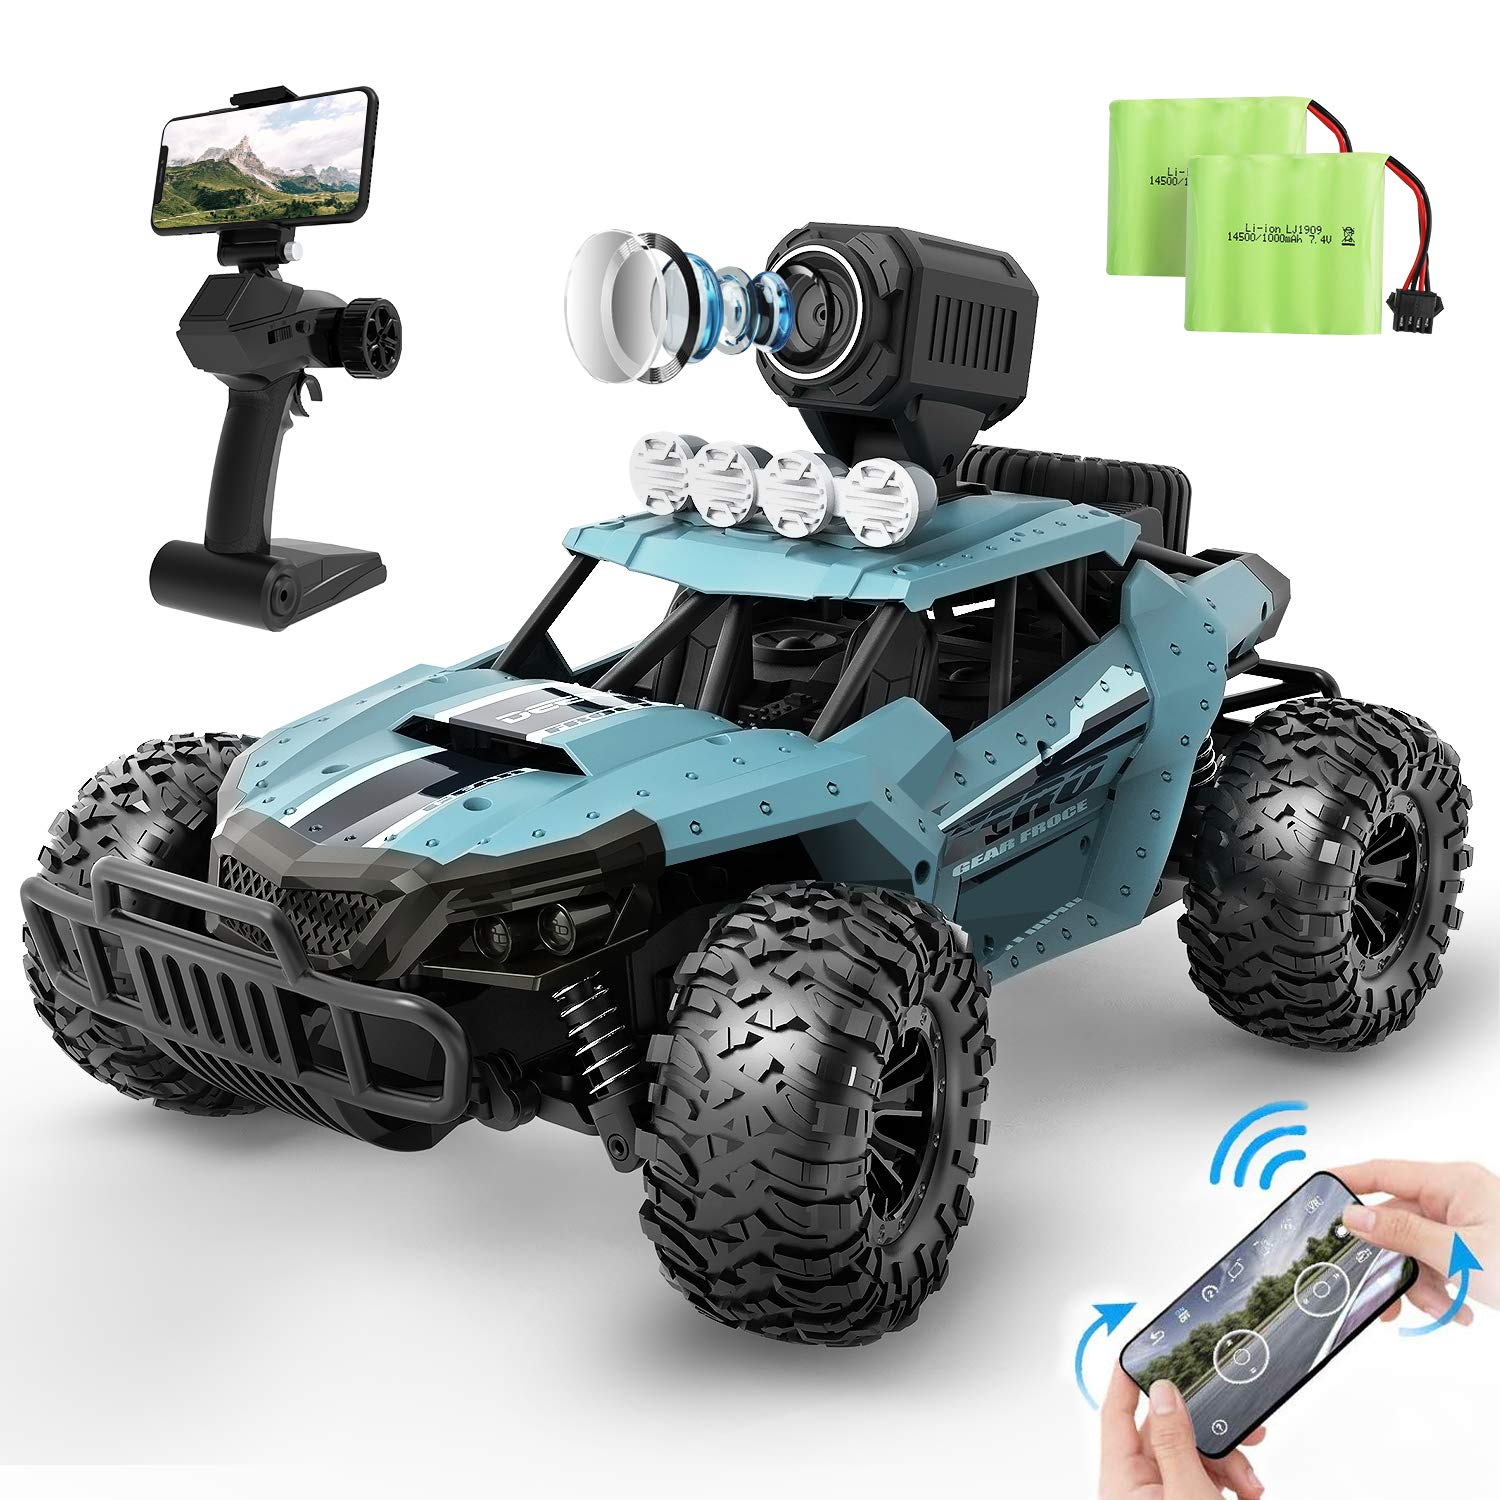 DEERC RC Cars DE36W Remote Control Car with 720P HD FPV Camera, 1/16 Scale  Off-Road Remote Control Truck, High Speed Monster Trucks for Kids Adults 2  Batteries for 60 Min Play, Gift